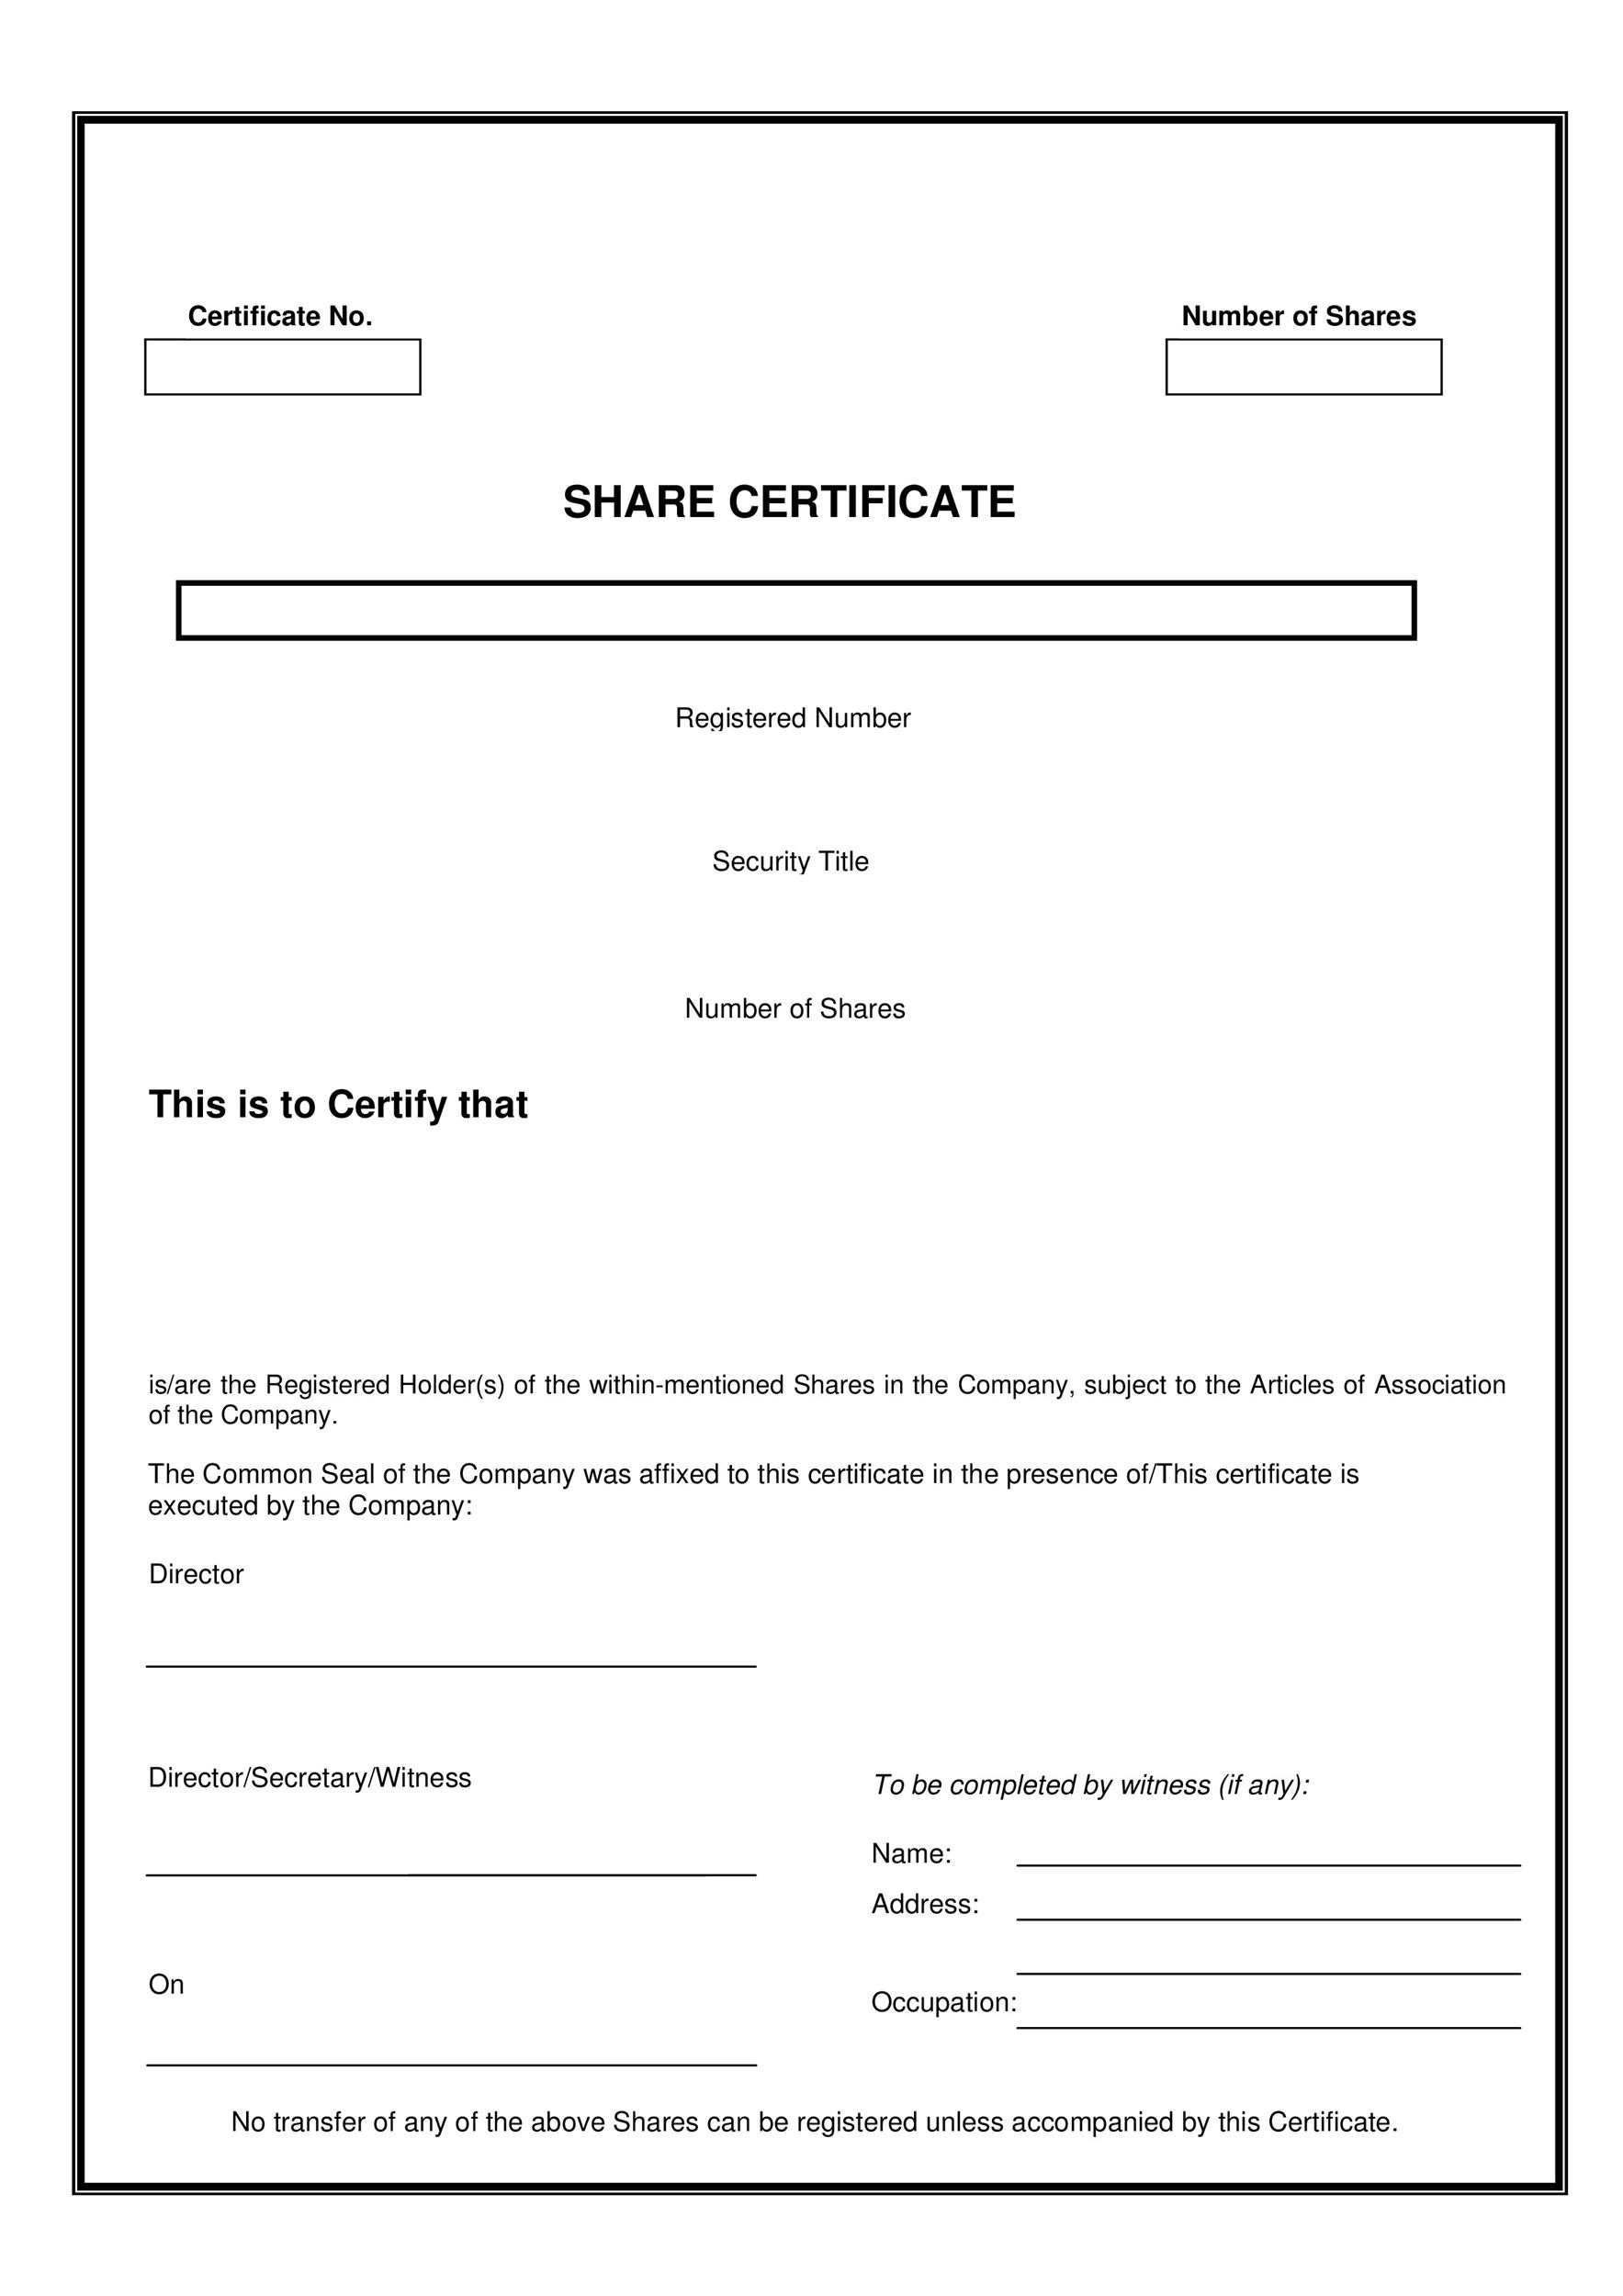 40 free stock certificate templates word pdf template lab free stock certificate templates yadclub Choice Image